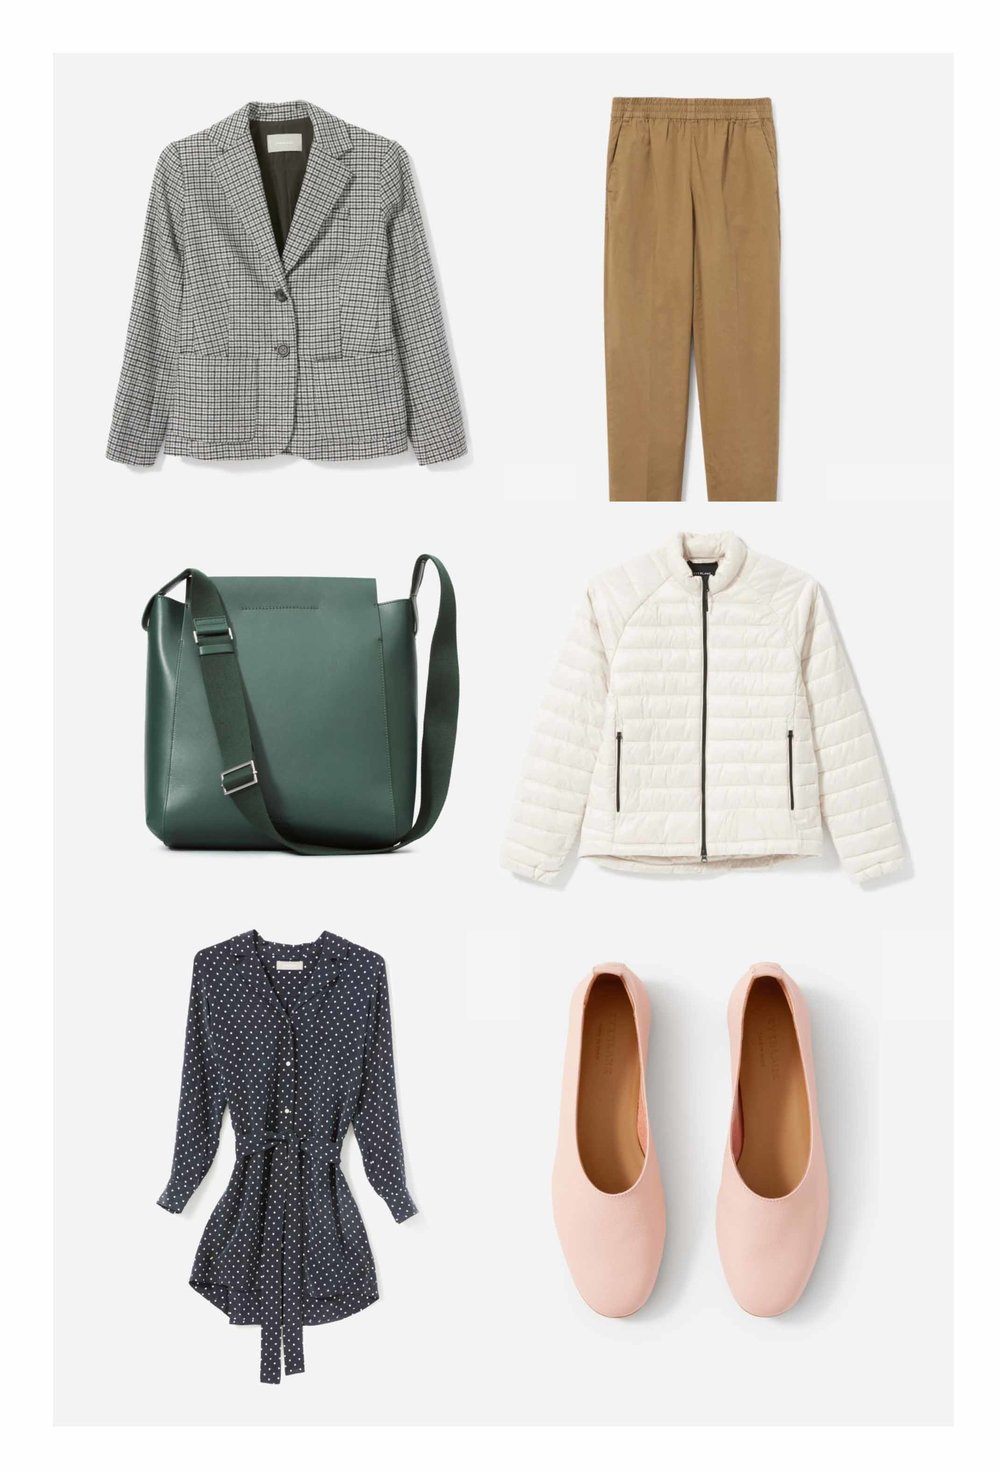 everlane gift winners.jpg